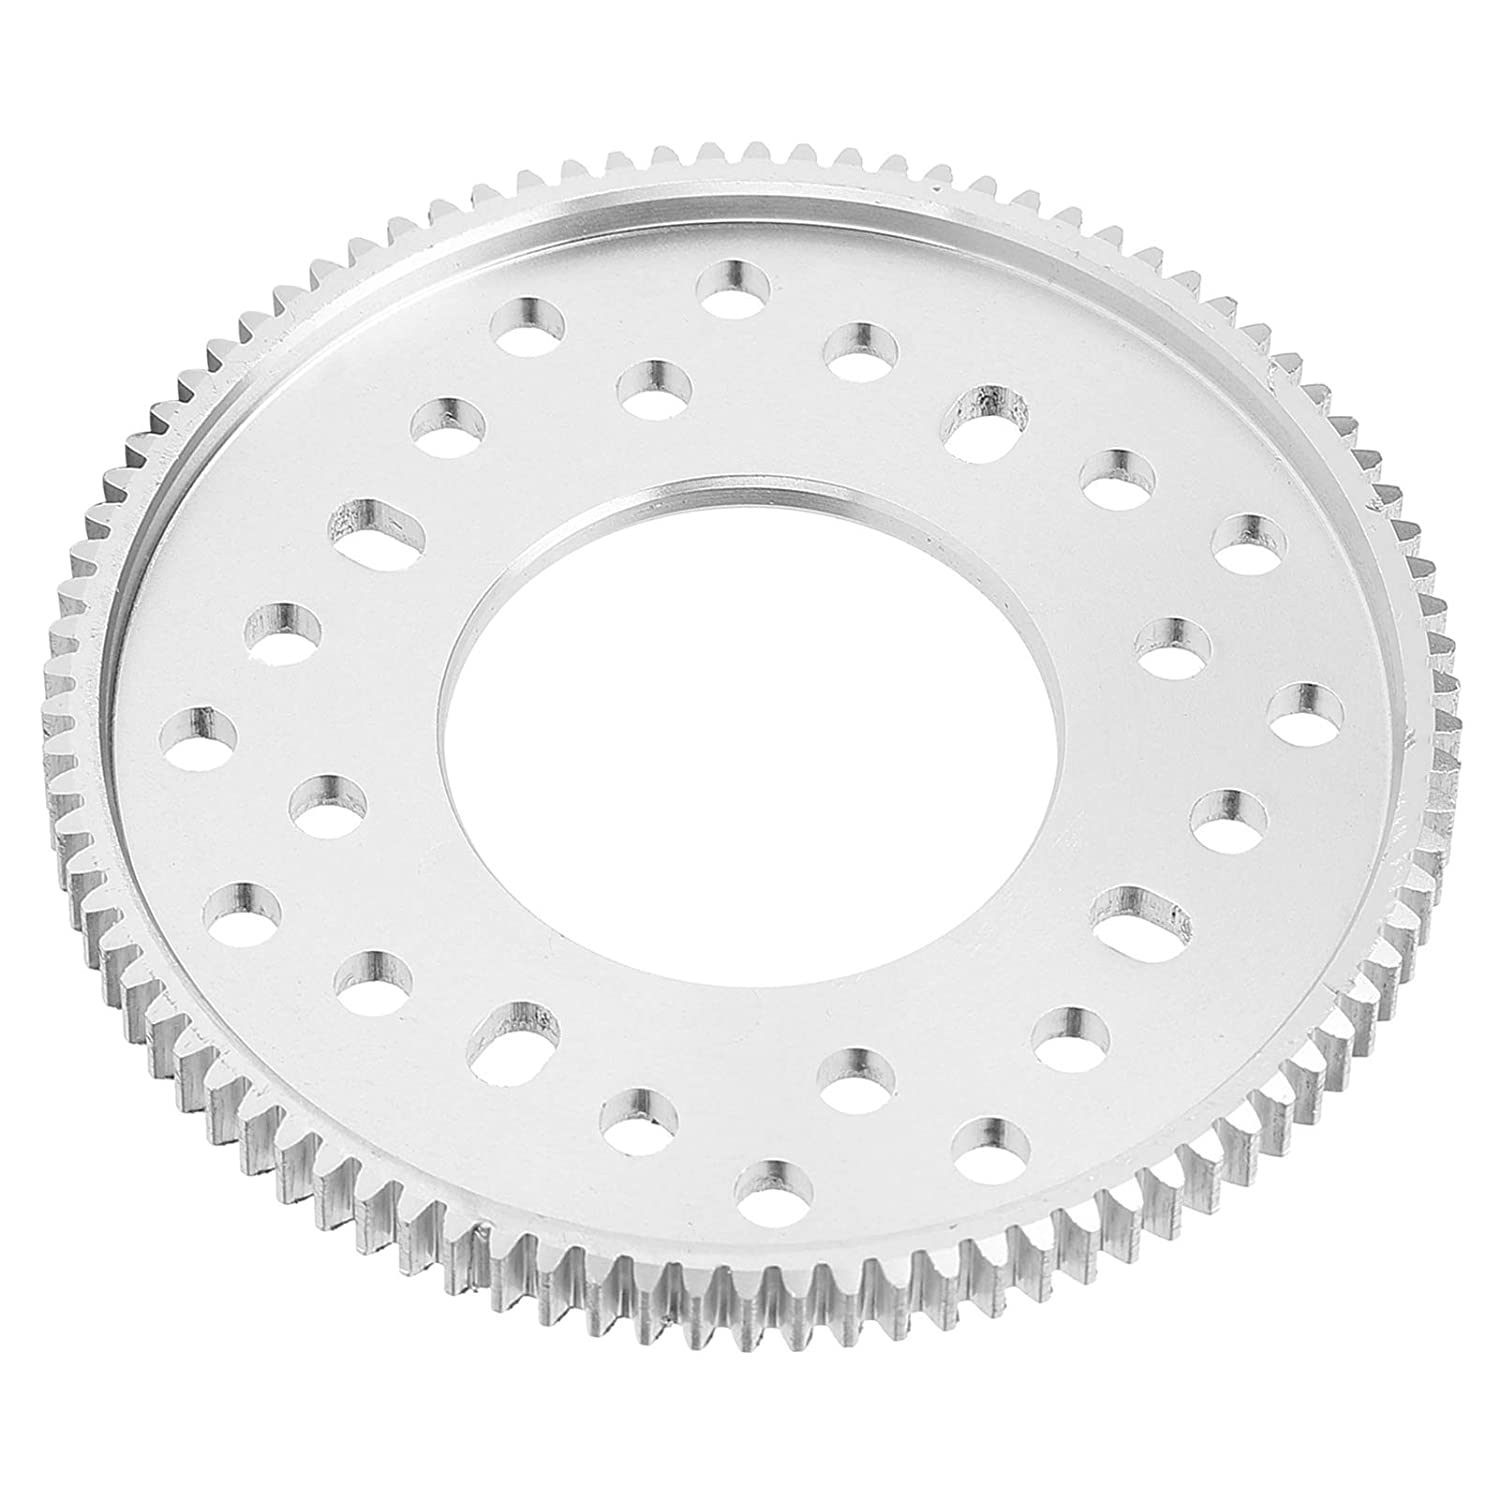 Max 46% OFF 90 Tooth Cylindrical Aluminum Gear 32mm Alumin Max 71% OFF